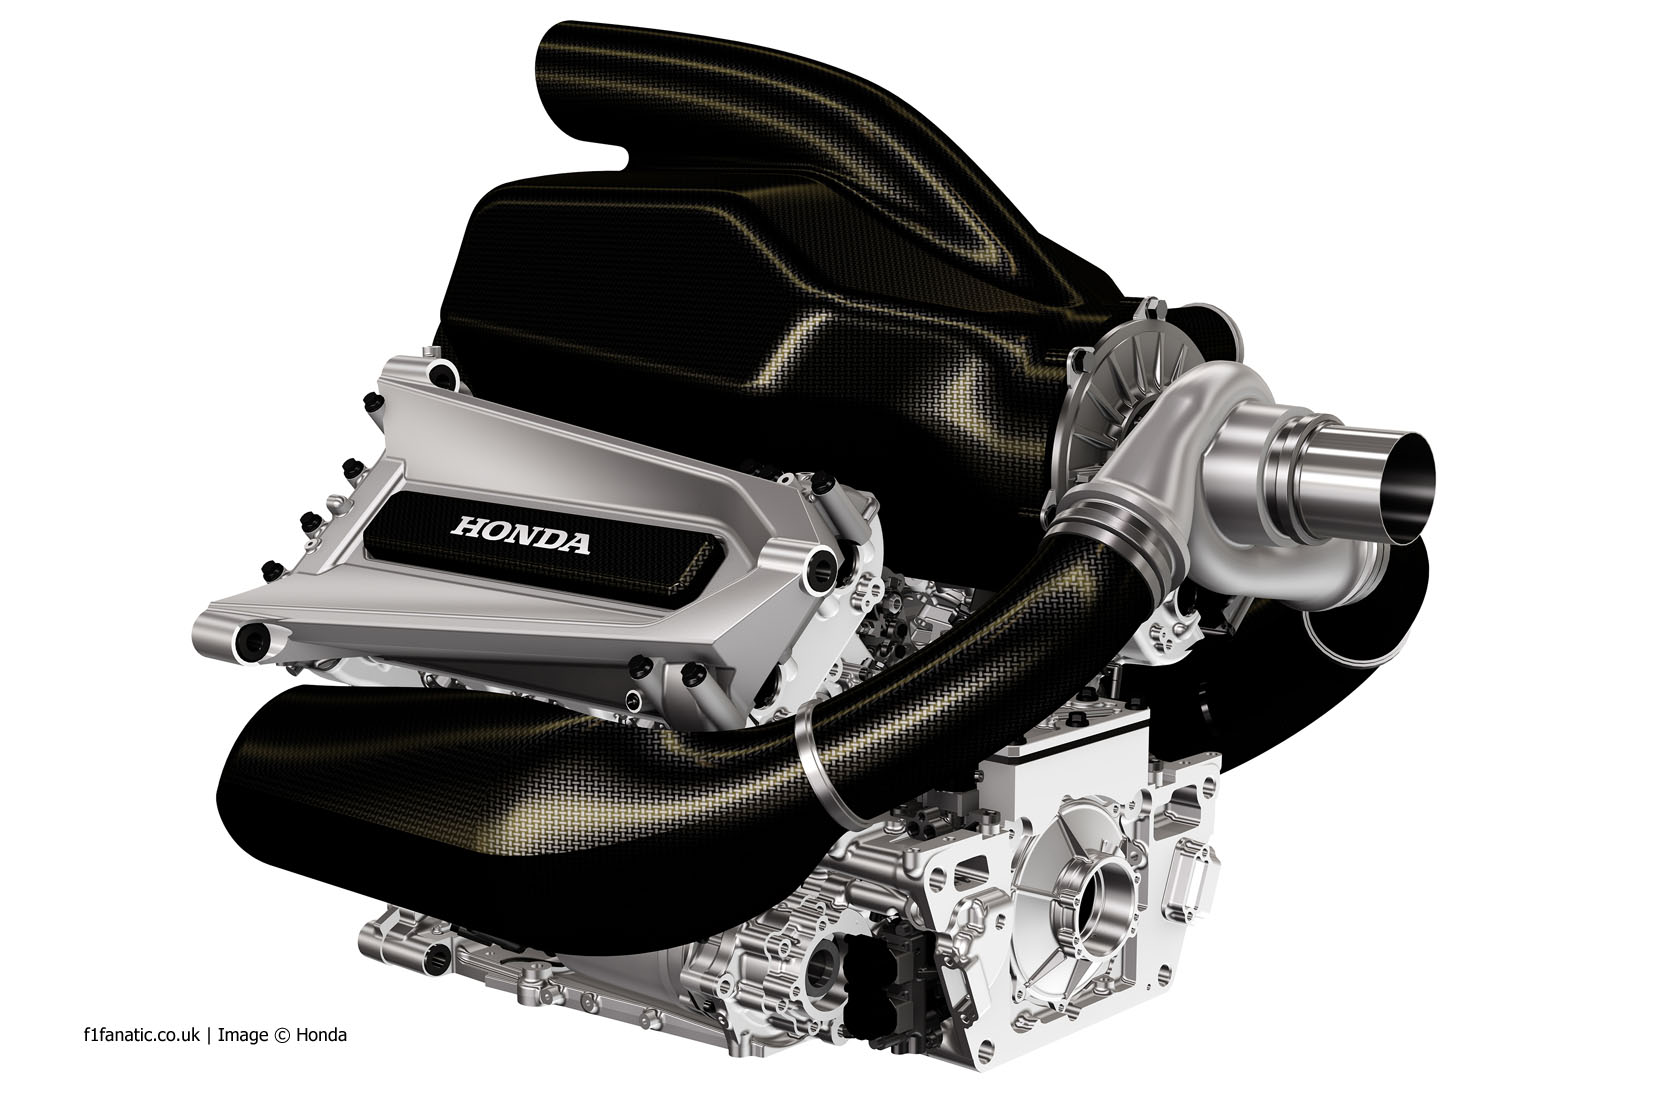 Mclaren F1 Engine Diagram List Of Schematic Circuit Turbo Honda Reveals 2015 Power Unit Racefans Rh Net